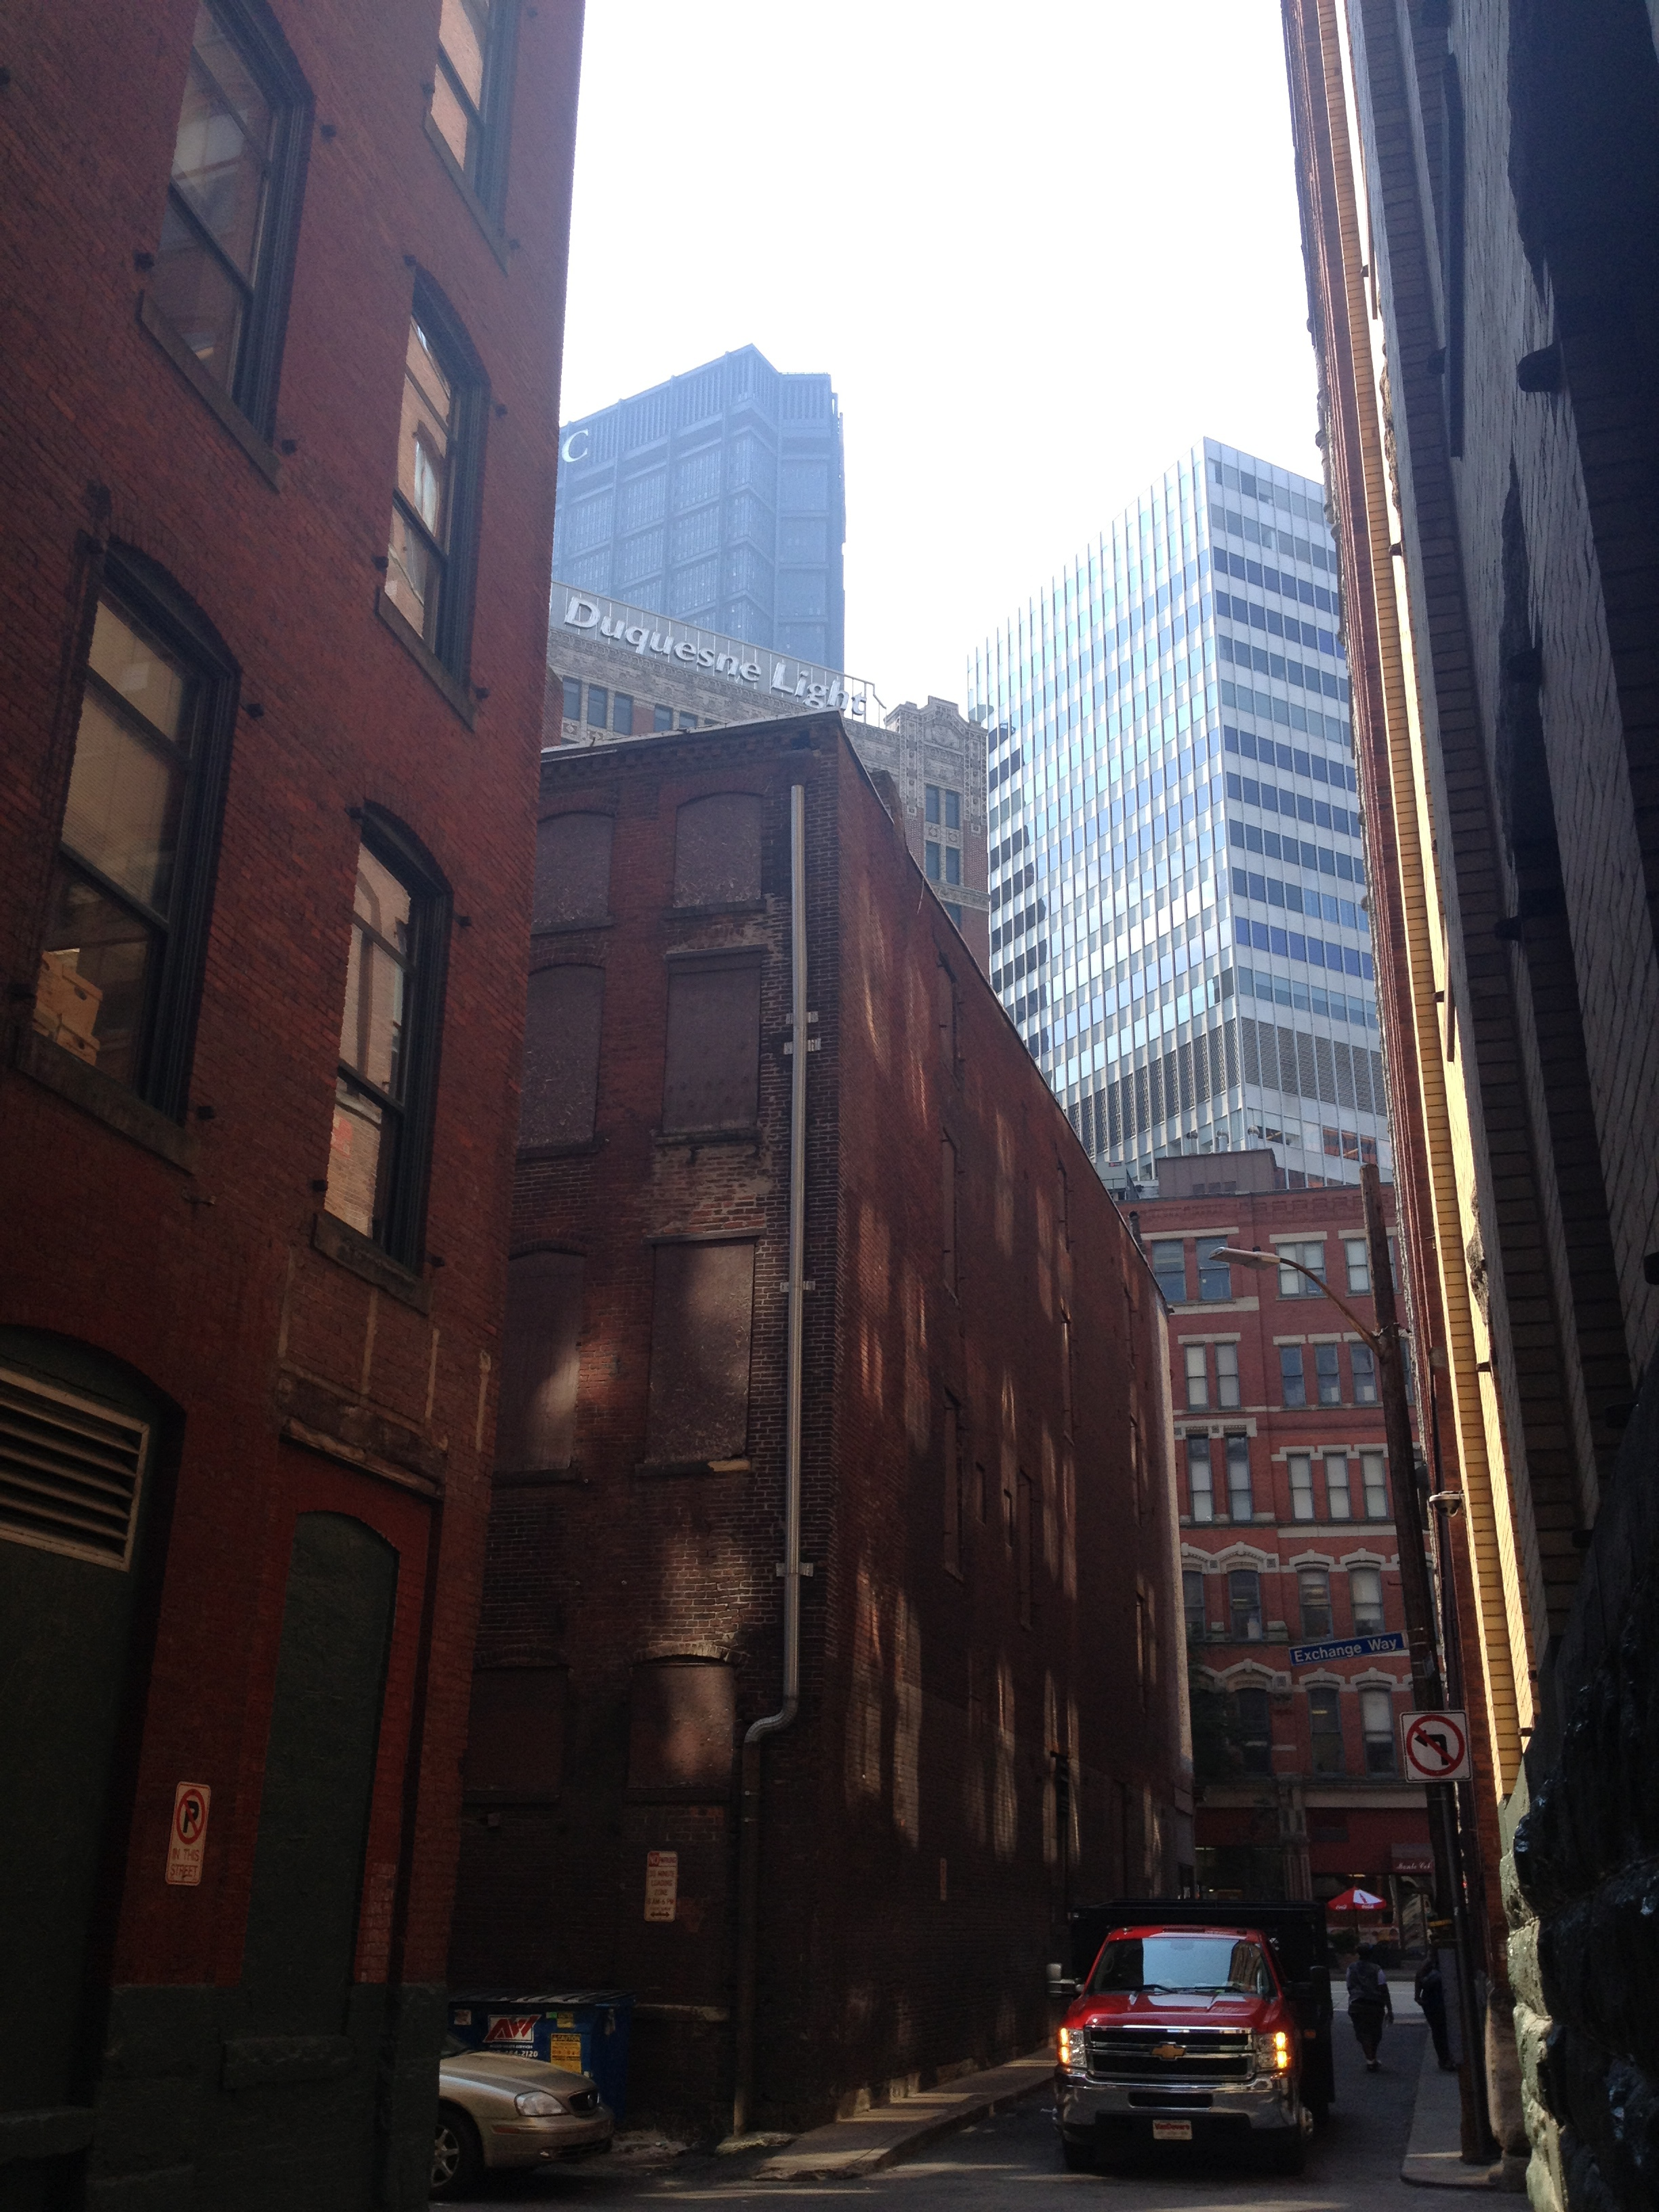 The city is filled with more than just cool looking old buildings.